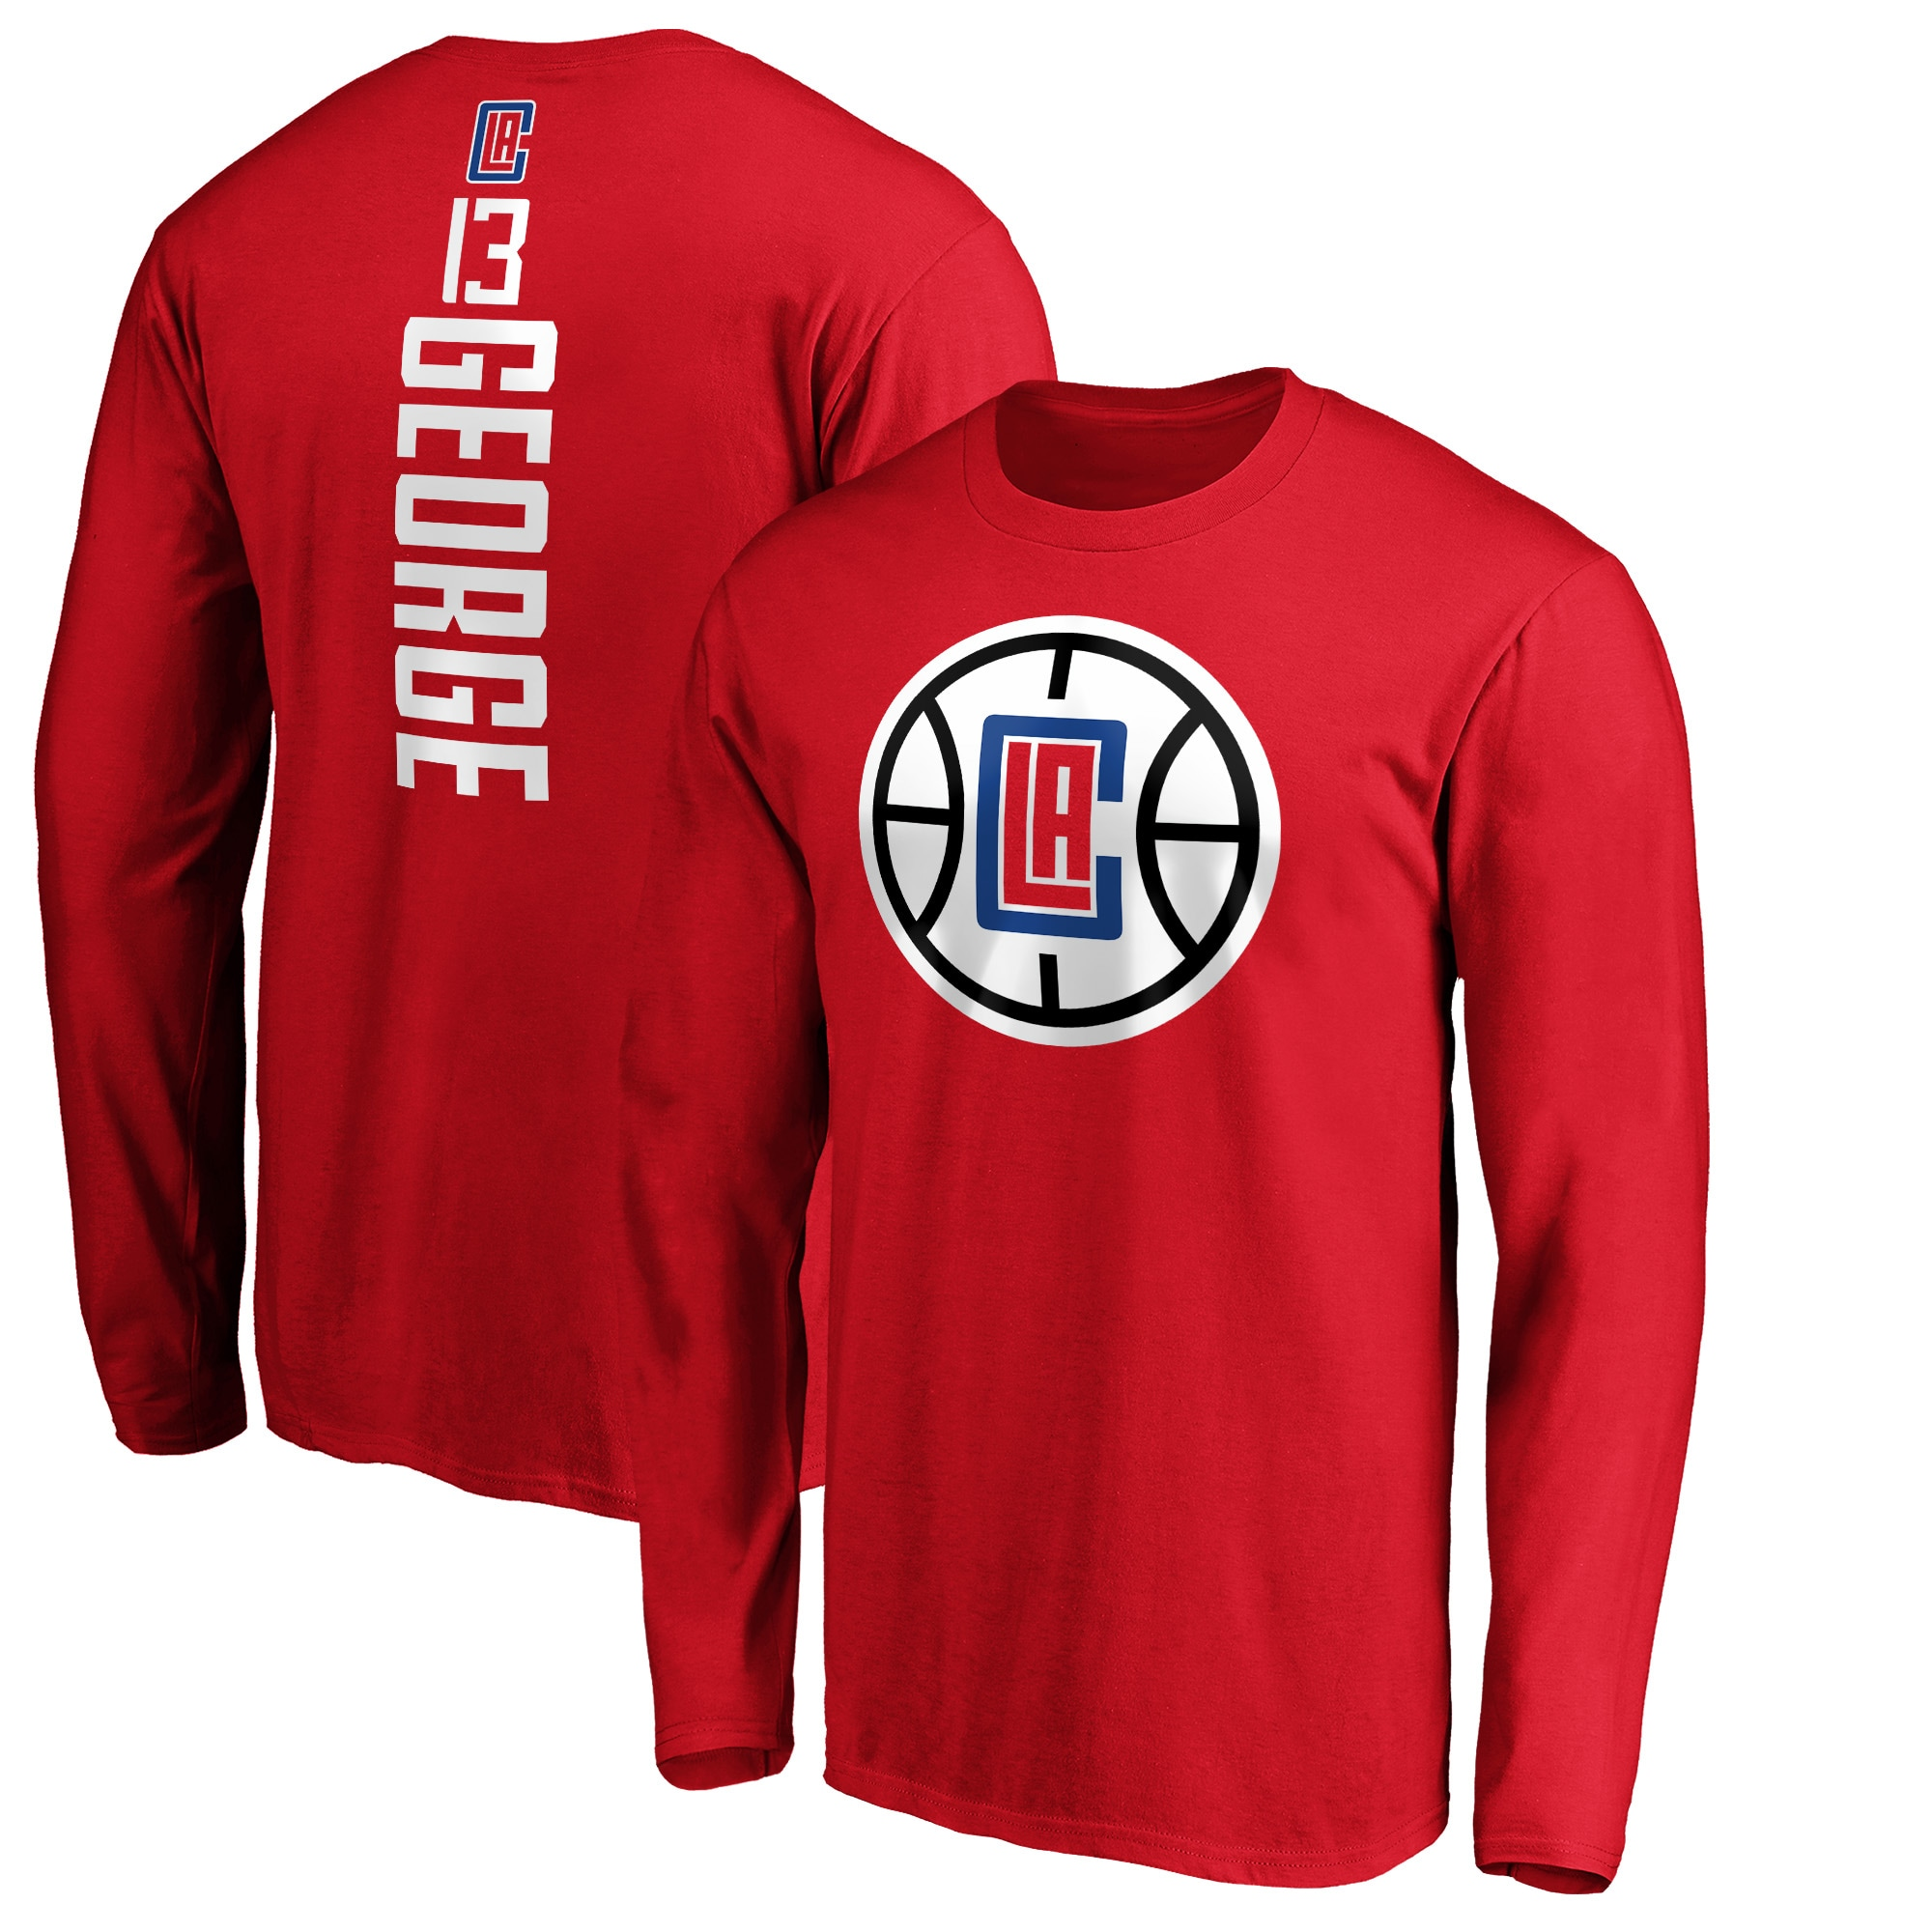 Paul George LA Clippers Fanatics Branded Big & Tall Playmaker Name & Number Long Sleeve T-Shirt - Red